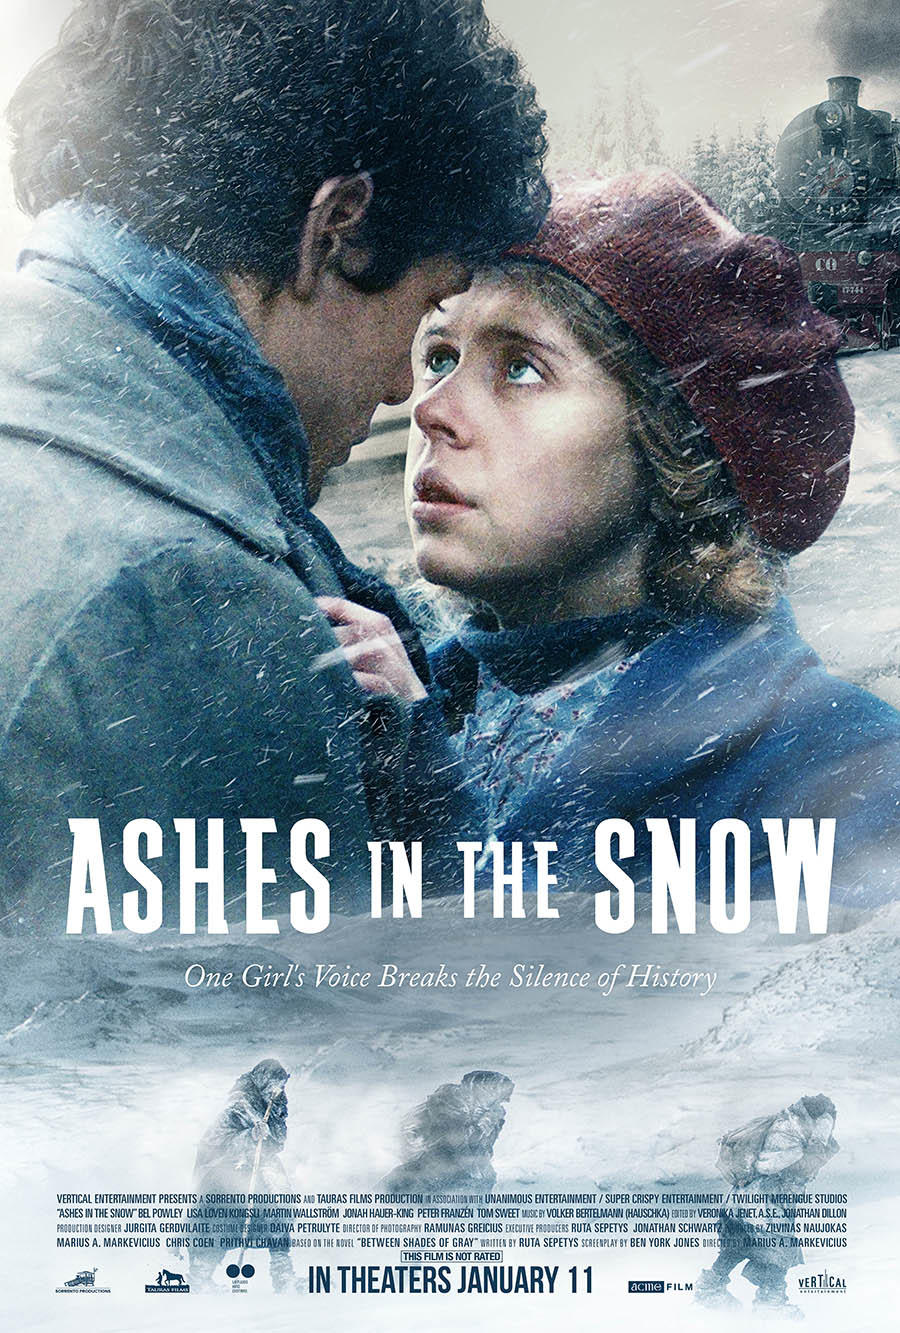 Ashes in the Snow poster art